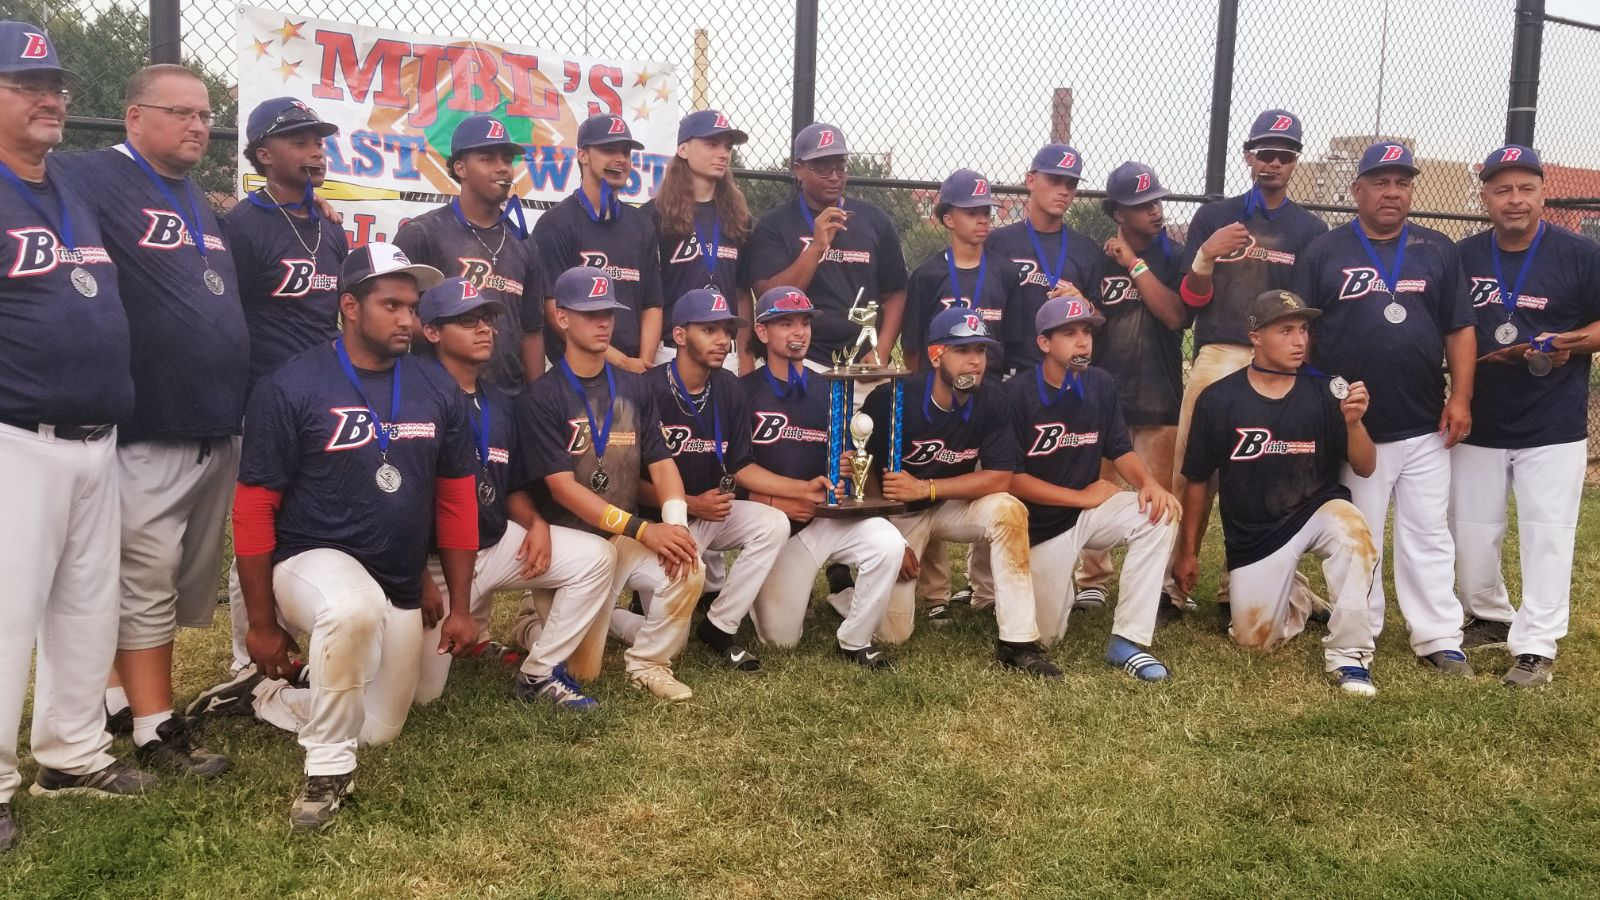 243d16b6698 Check out the news articles below from the 2018 MJBL Classic Tournament and All  Star Game!